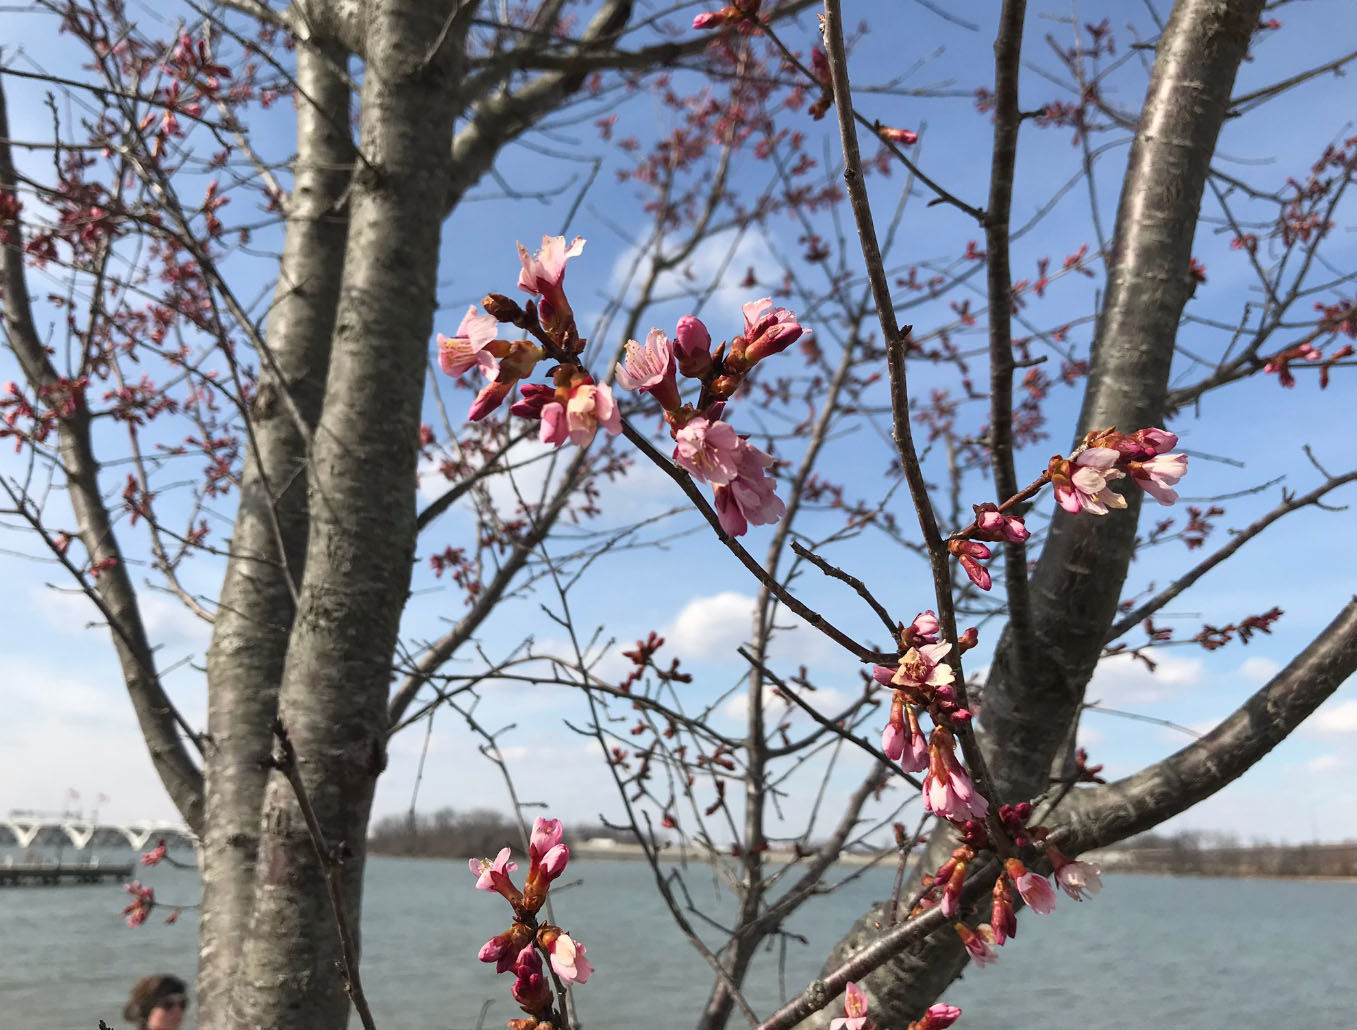 National Harbor in Prince George's County will showcase its onw cherry blossom trees. (WTOP/Michelle Basch)